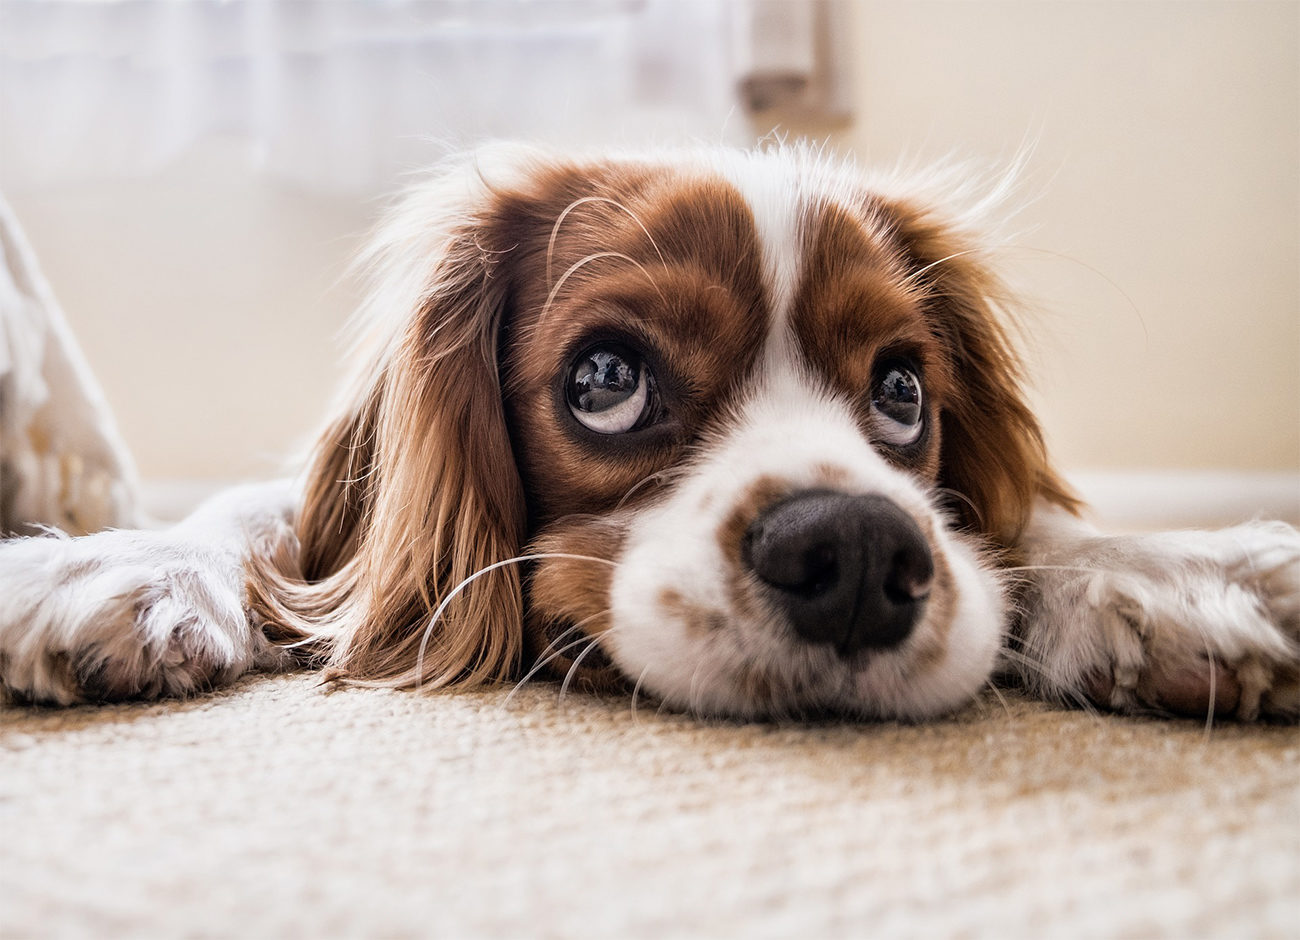 Dog with sad eyes laying on the carpet